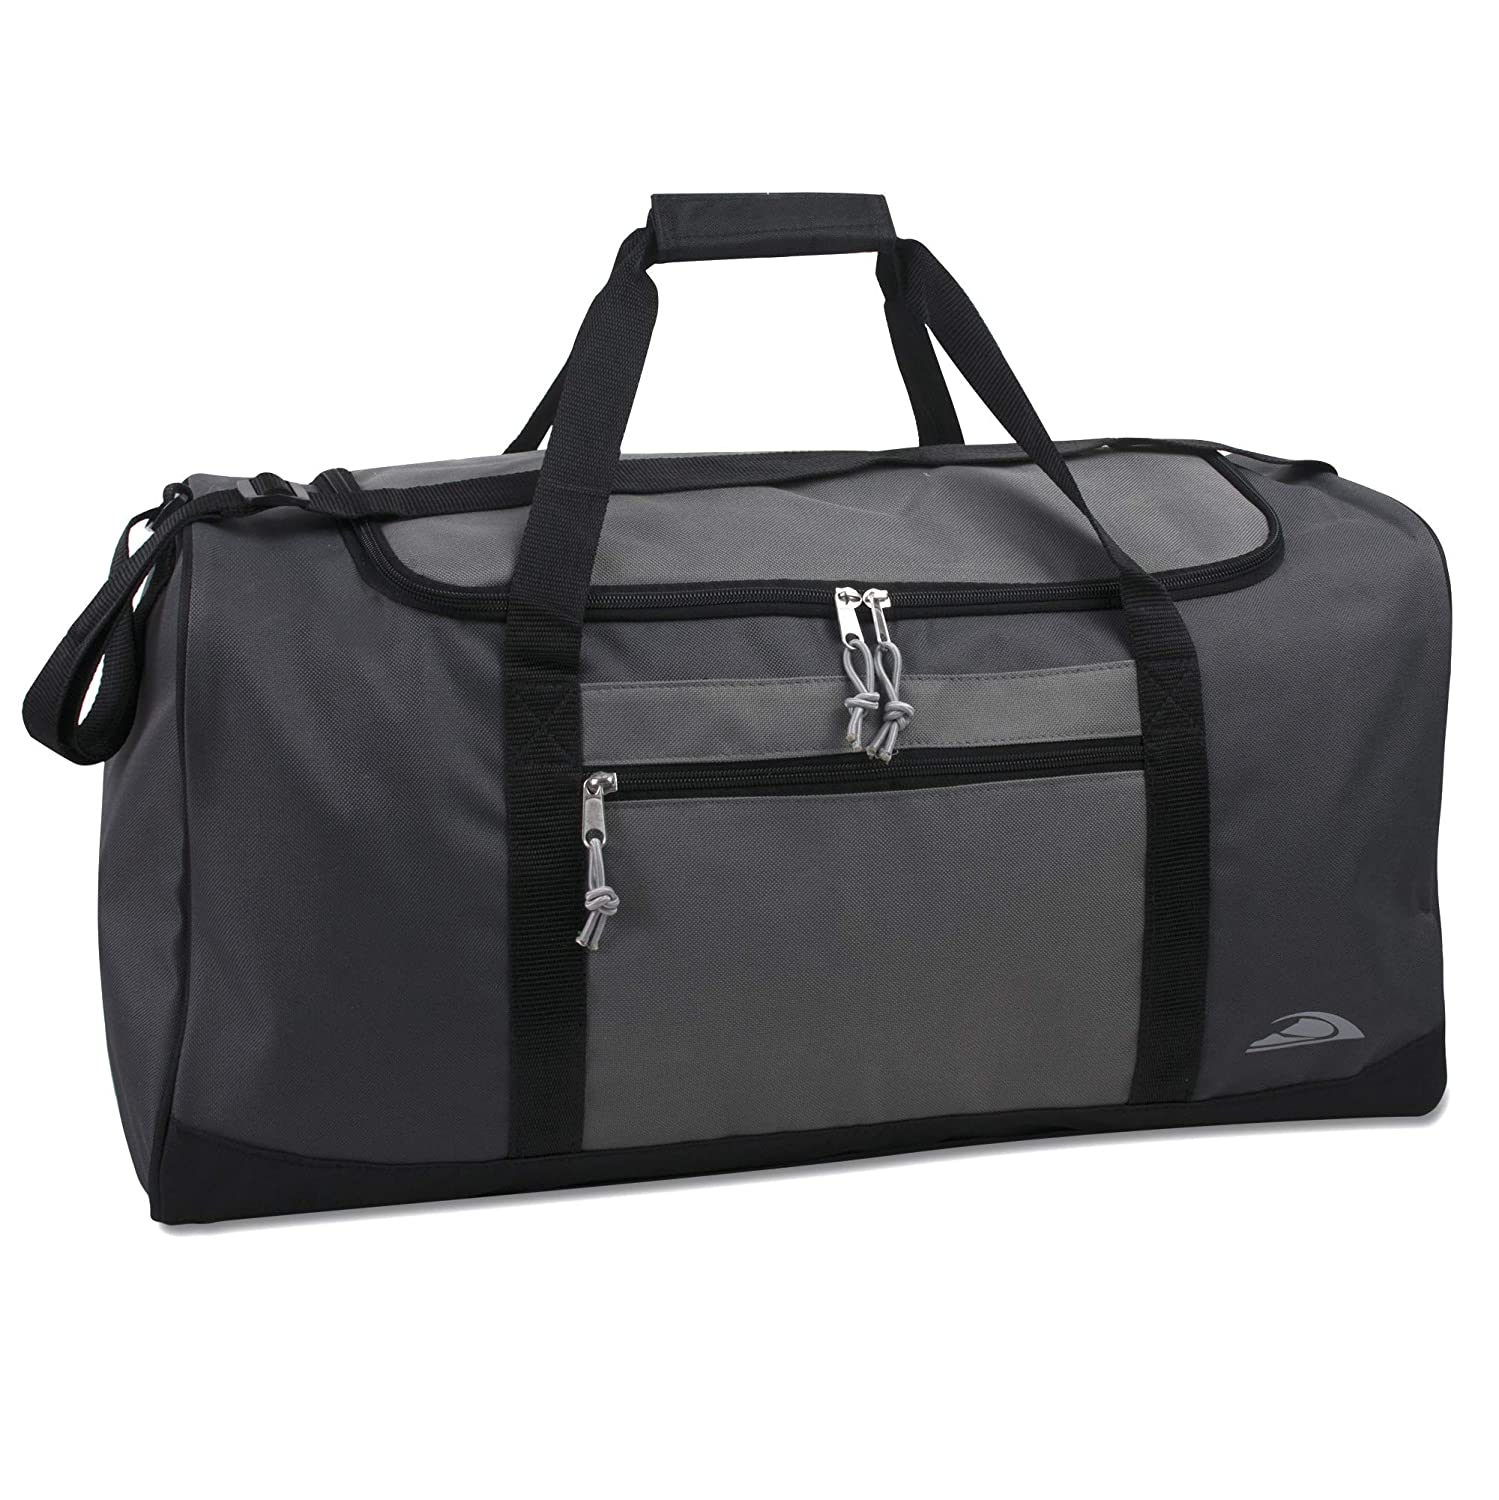 Lightweight Canvas Duffle Bags for Men Women For Traveling, the Gym, and as Sports Equipment Bag Organizer Grey 3